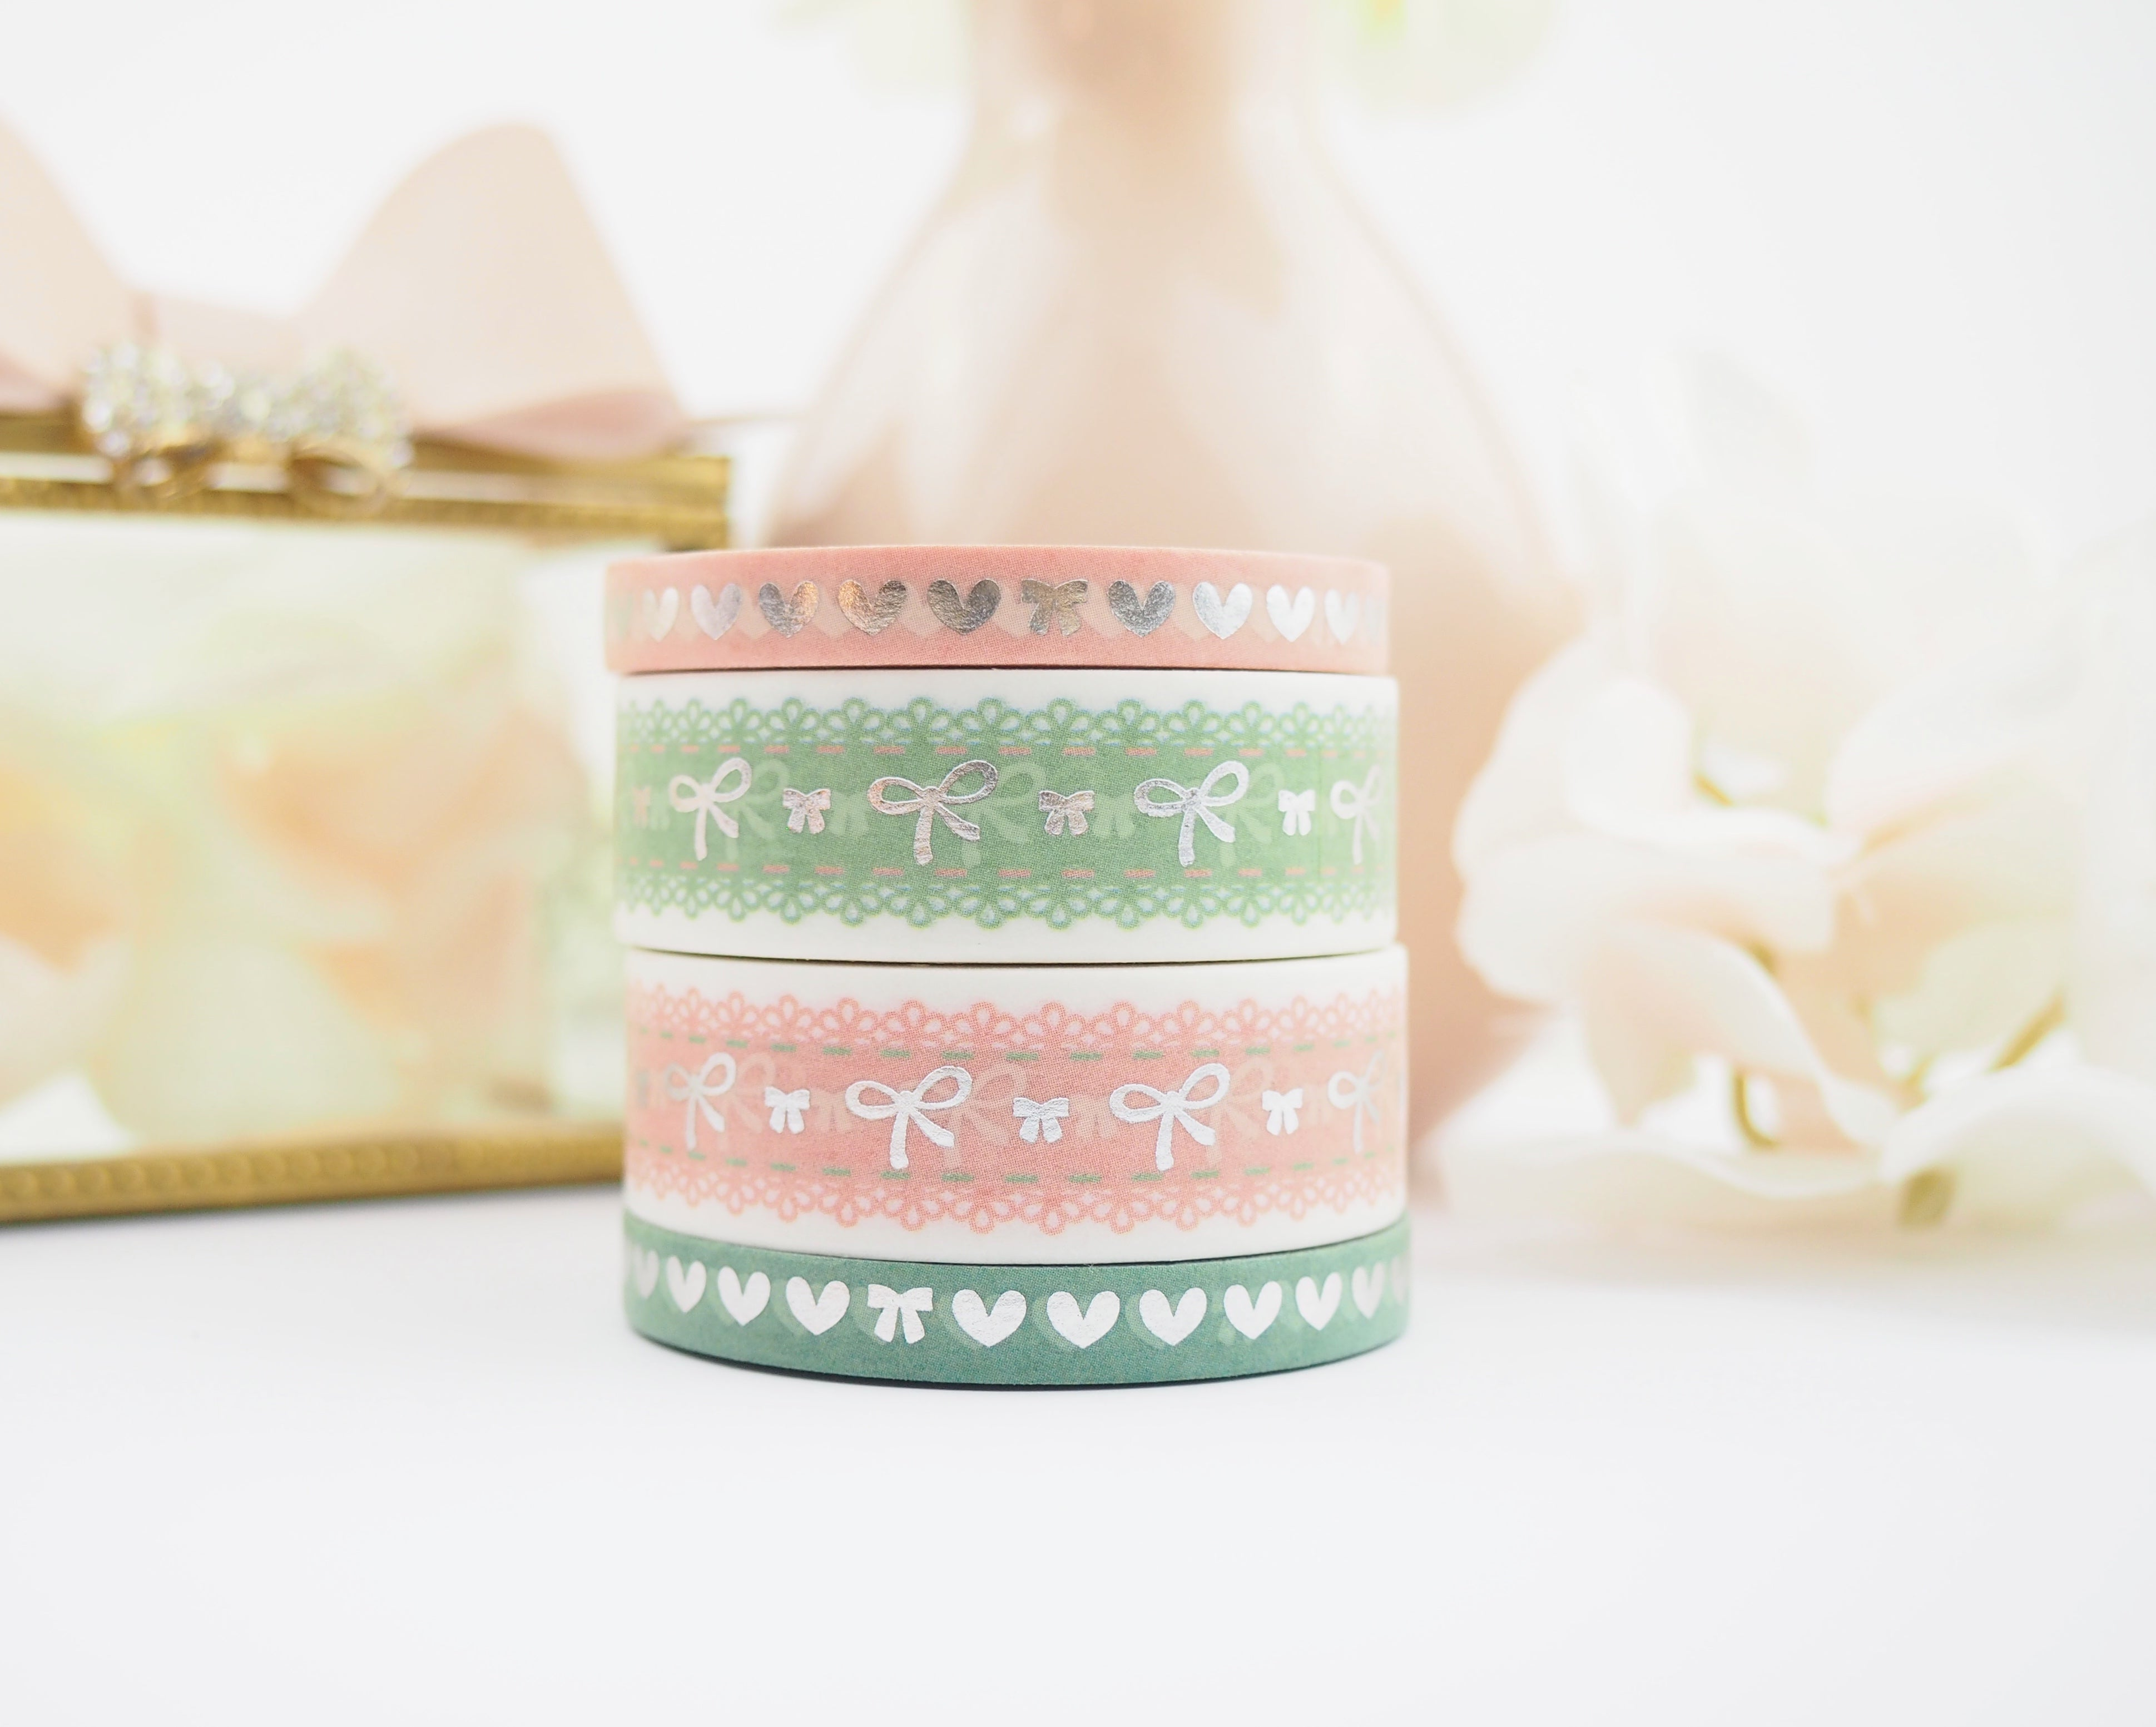 Peachy Keen Washi Collection  - The Pink Room Co Exclusive Original